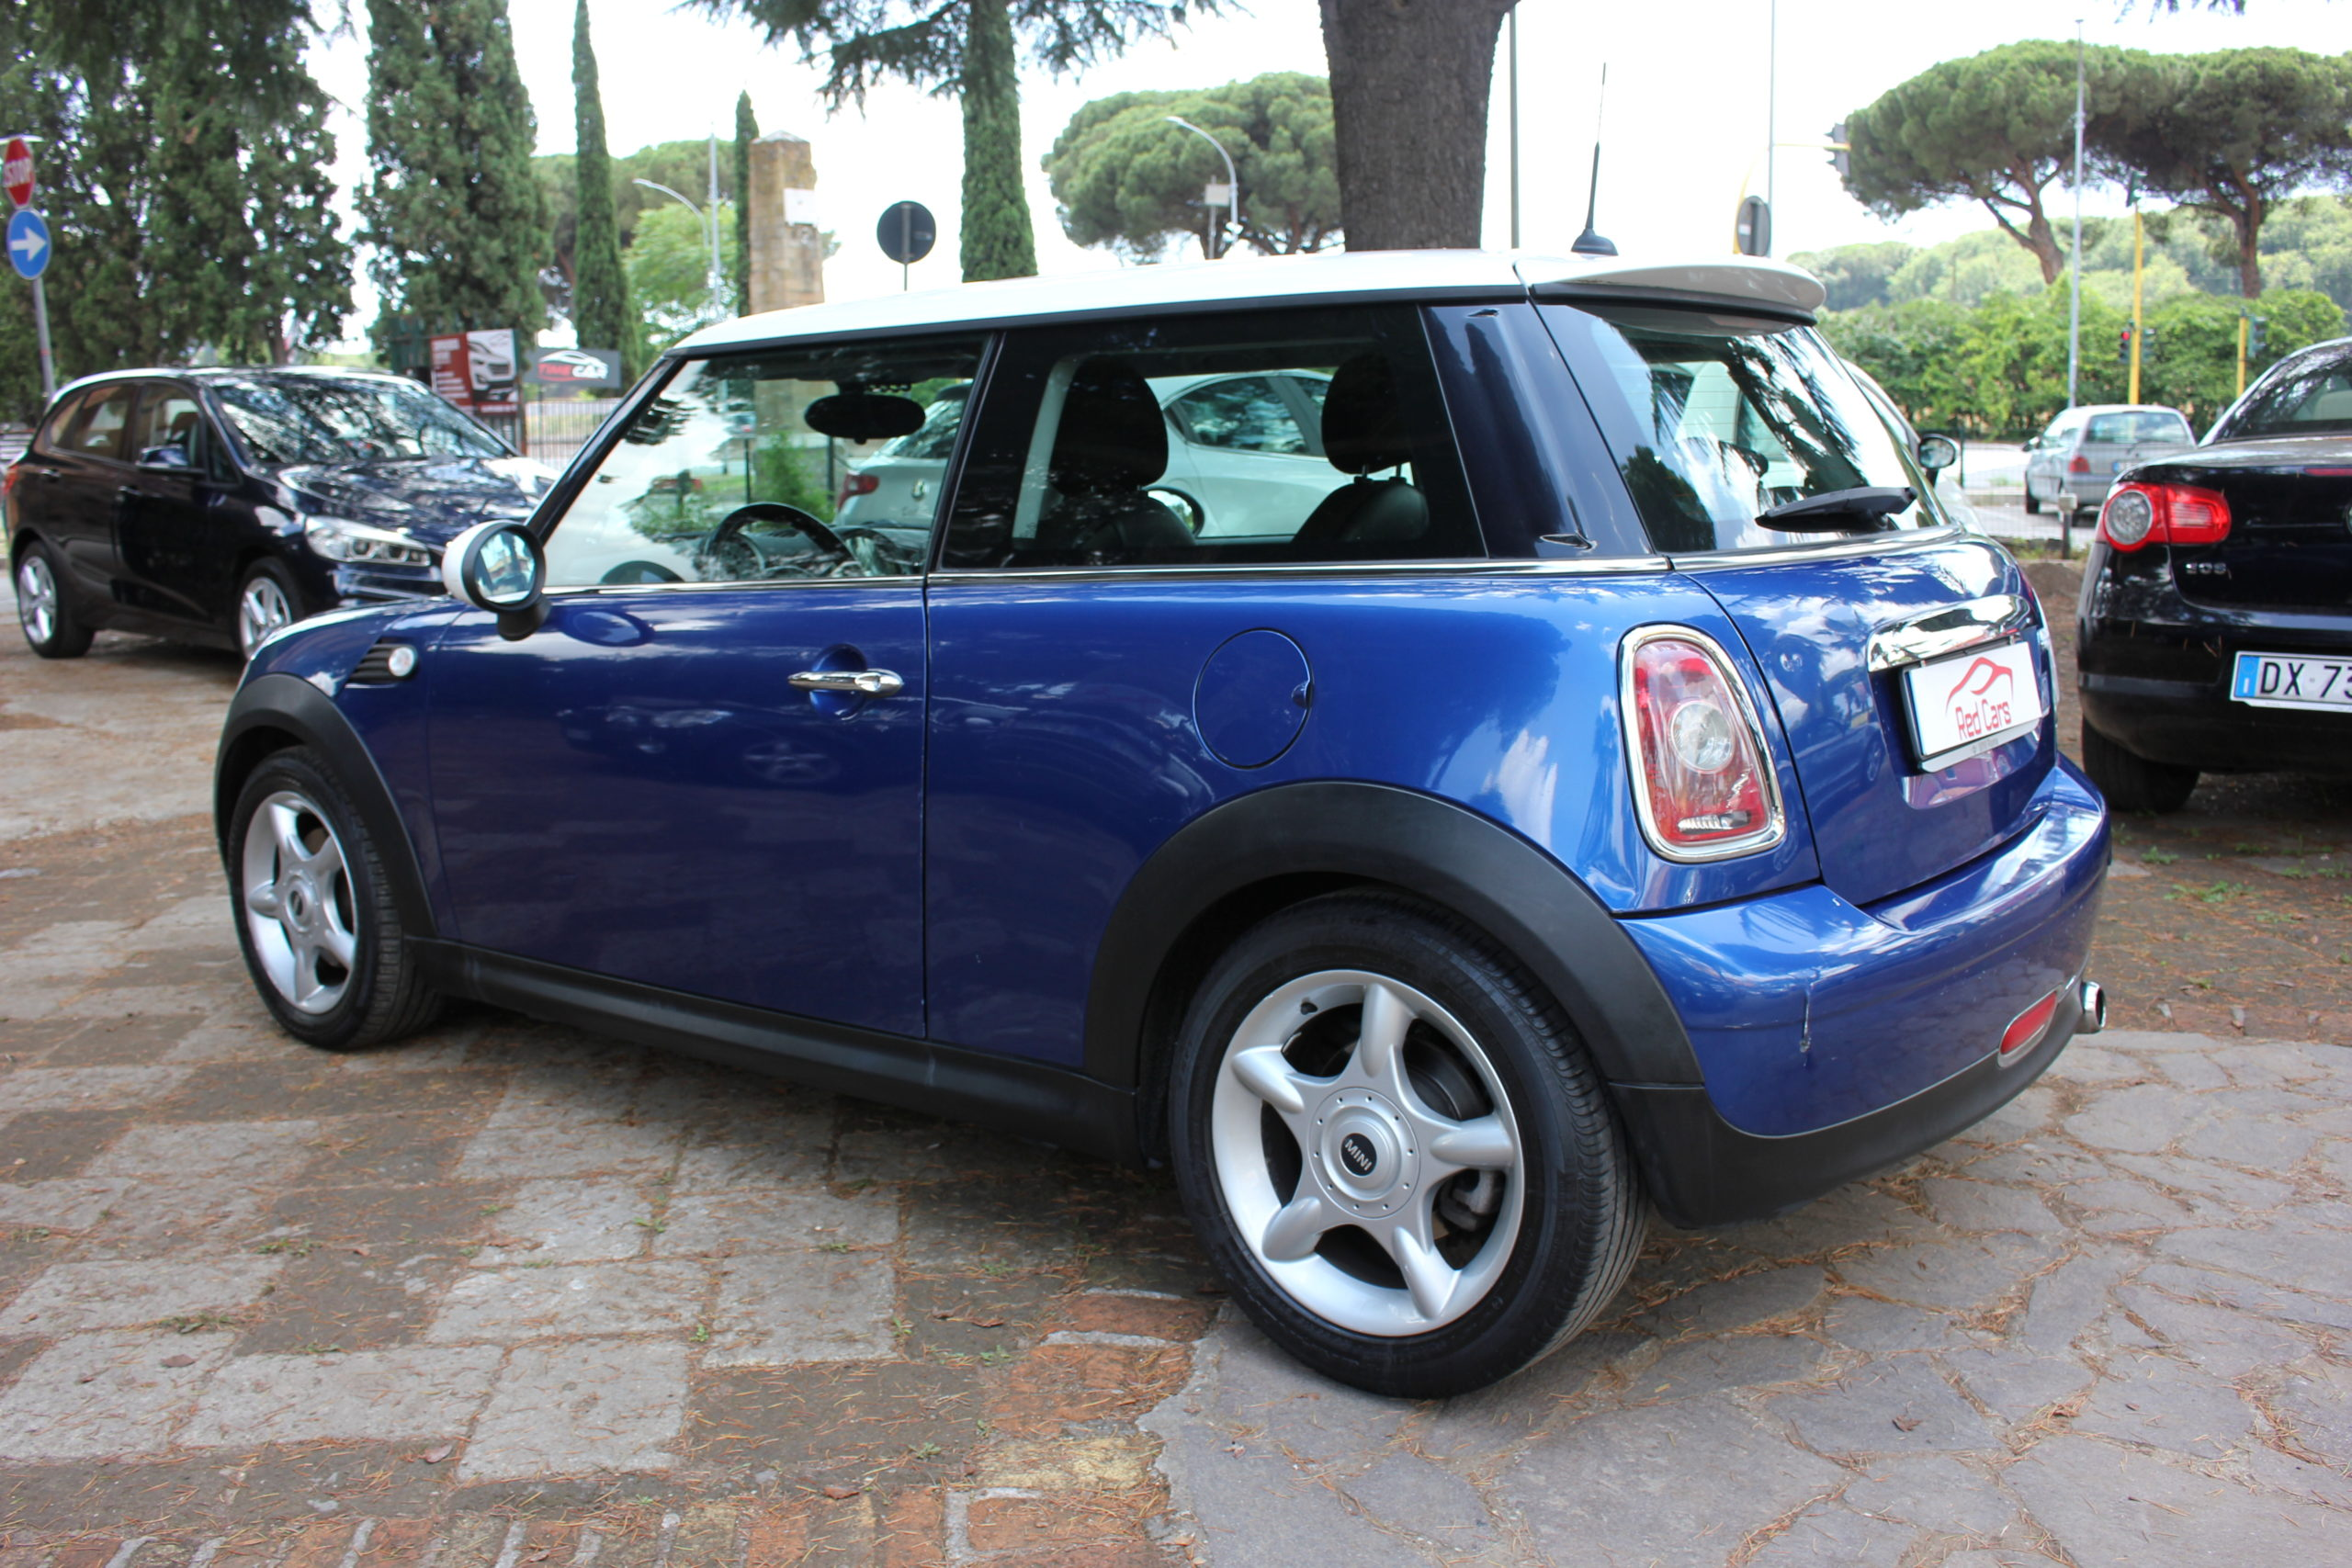 vendita MINI COOPER 1.6 BENZ 120 CV Red cars via cropani 65 Roma